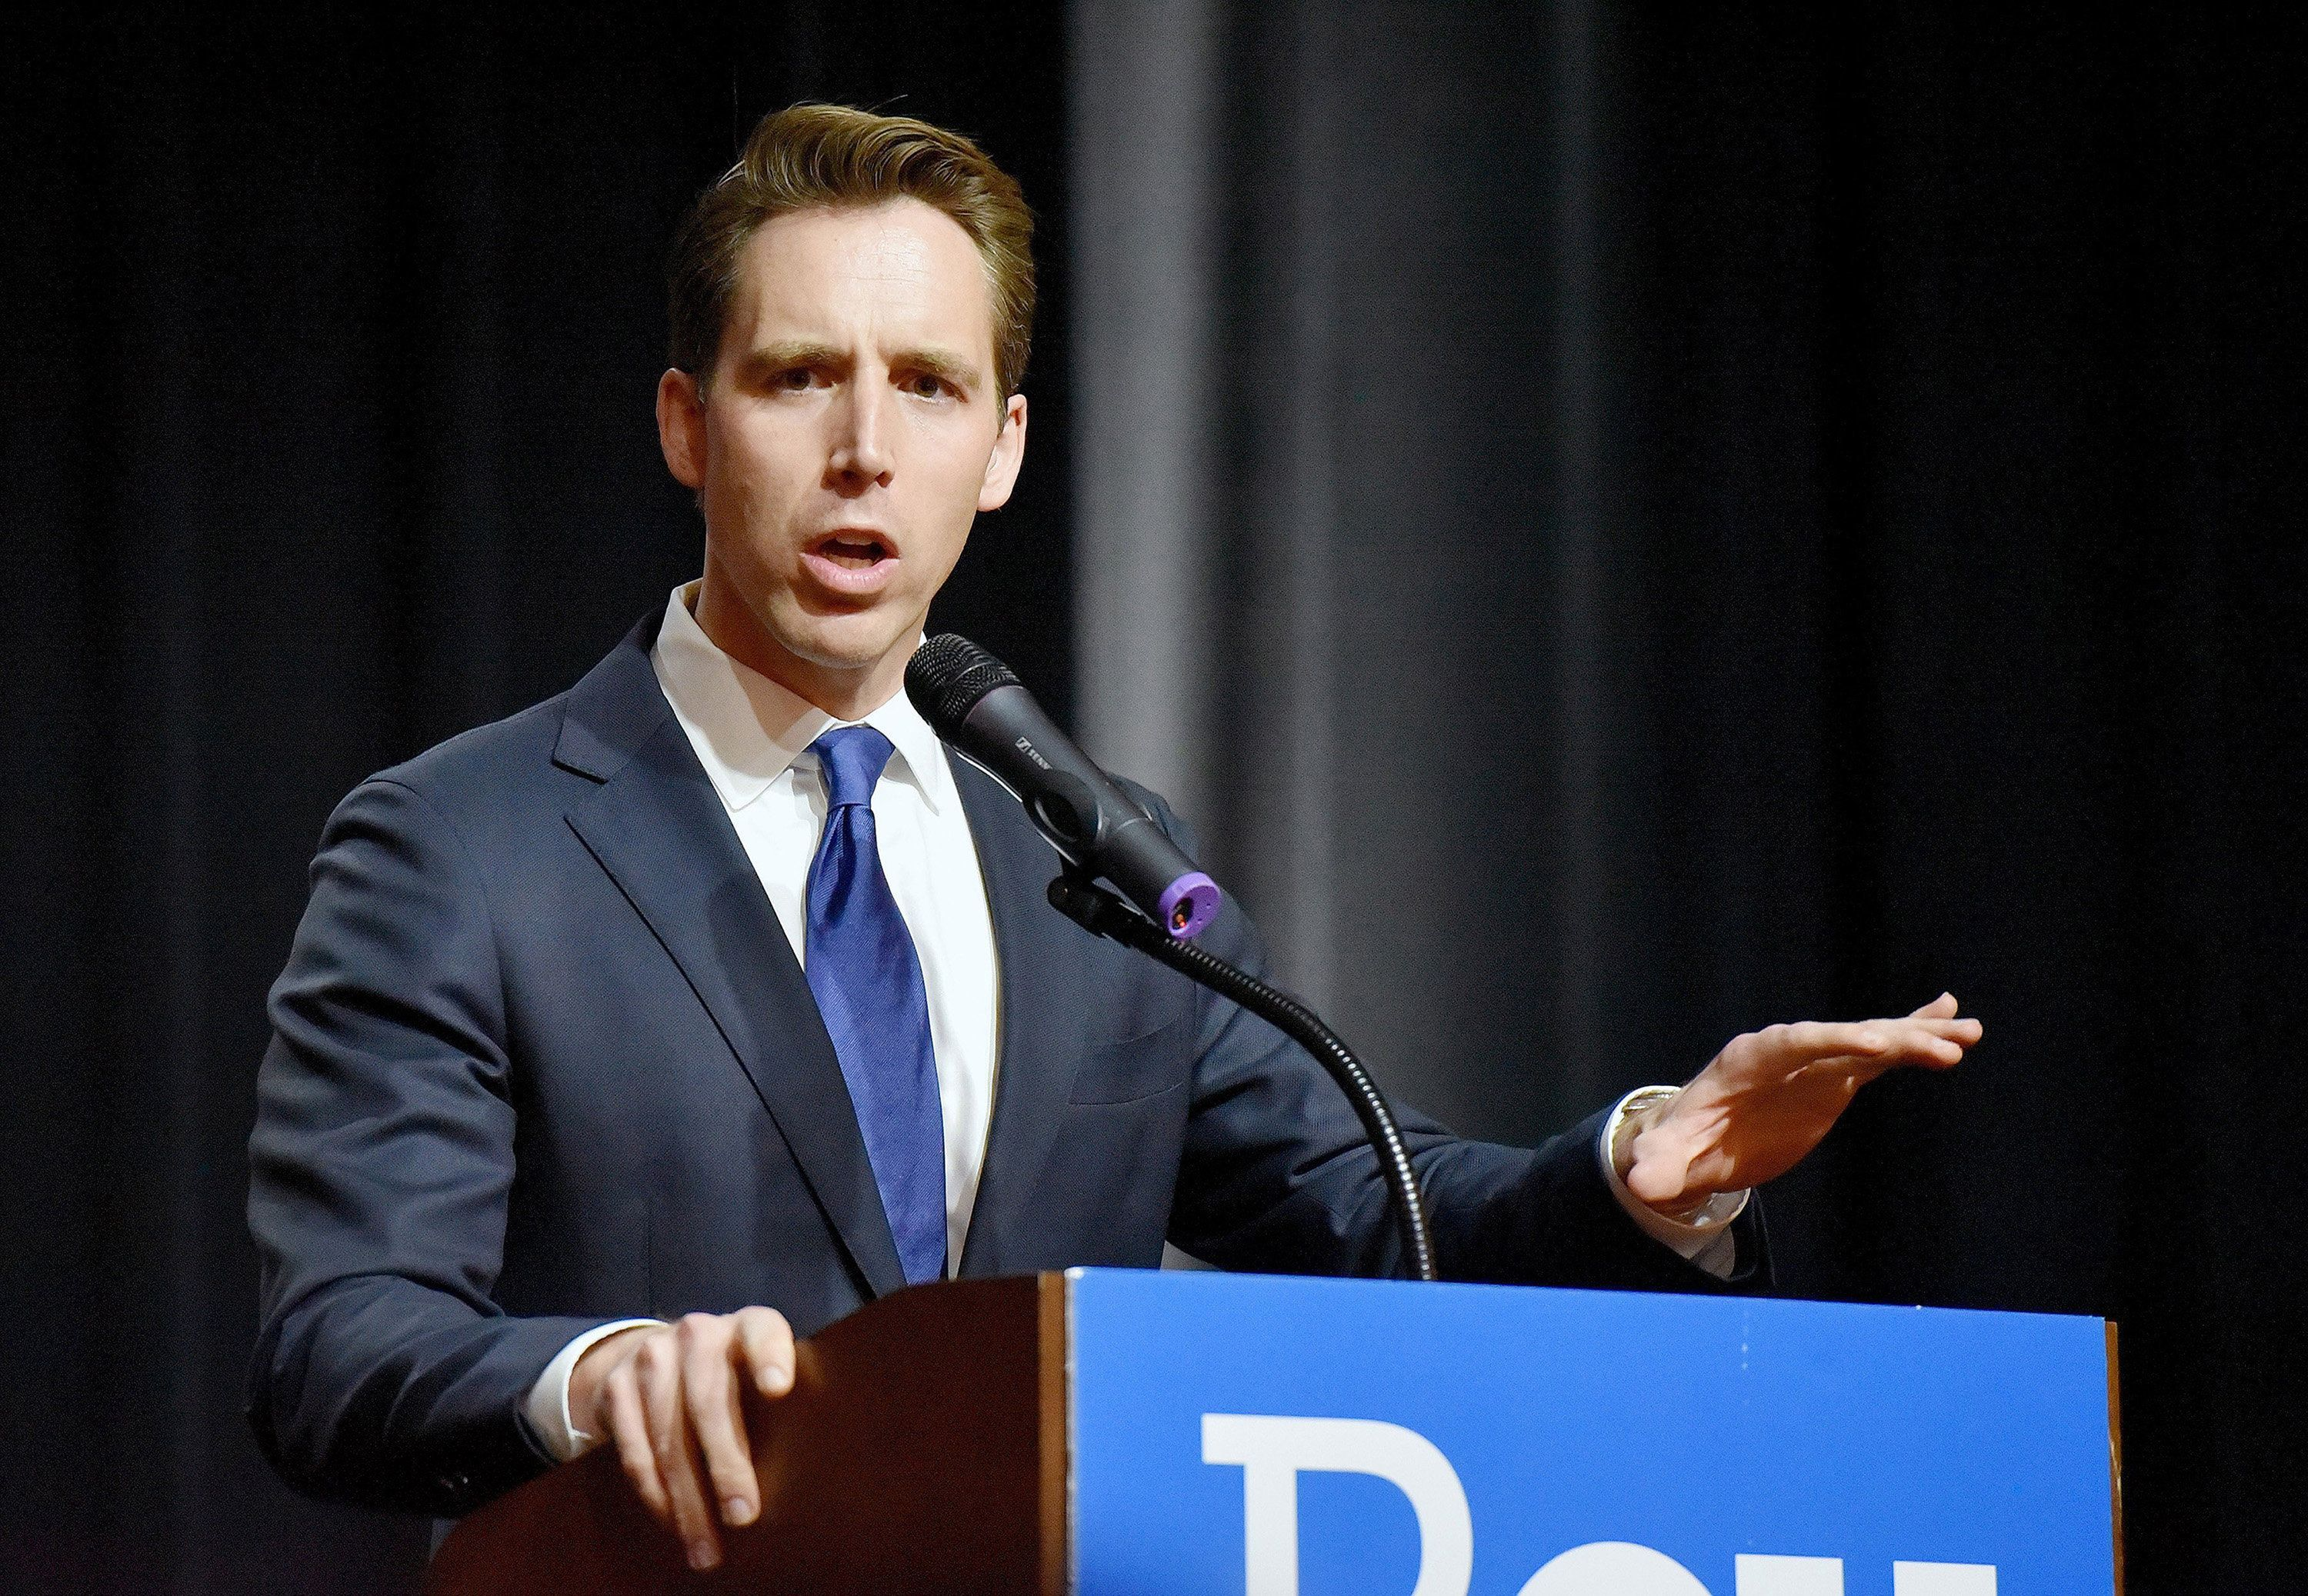 Missouri Attorney General Josh Hawley makes his acceptance speech on Nov. 9, 2016, in Springfield, Mo. On Tuesday, Aug. 7, 2018, he secured the Republican nomination to take on Democratic Sen. Claire McCaskill in November. (John Sleezer/Kansas City Star/TNS via Getty Images)